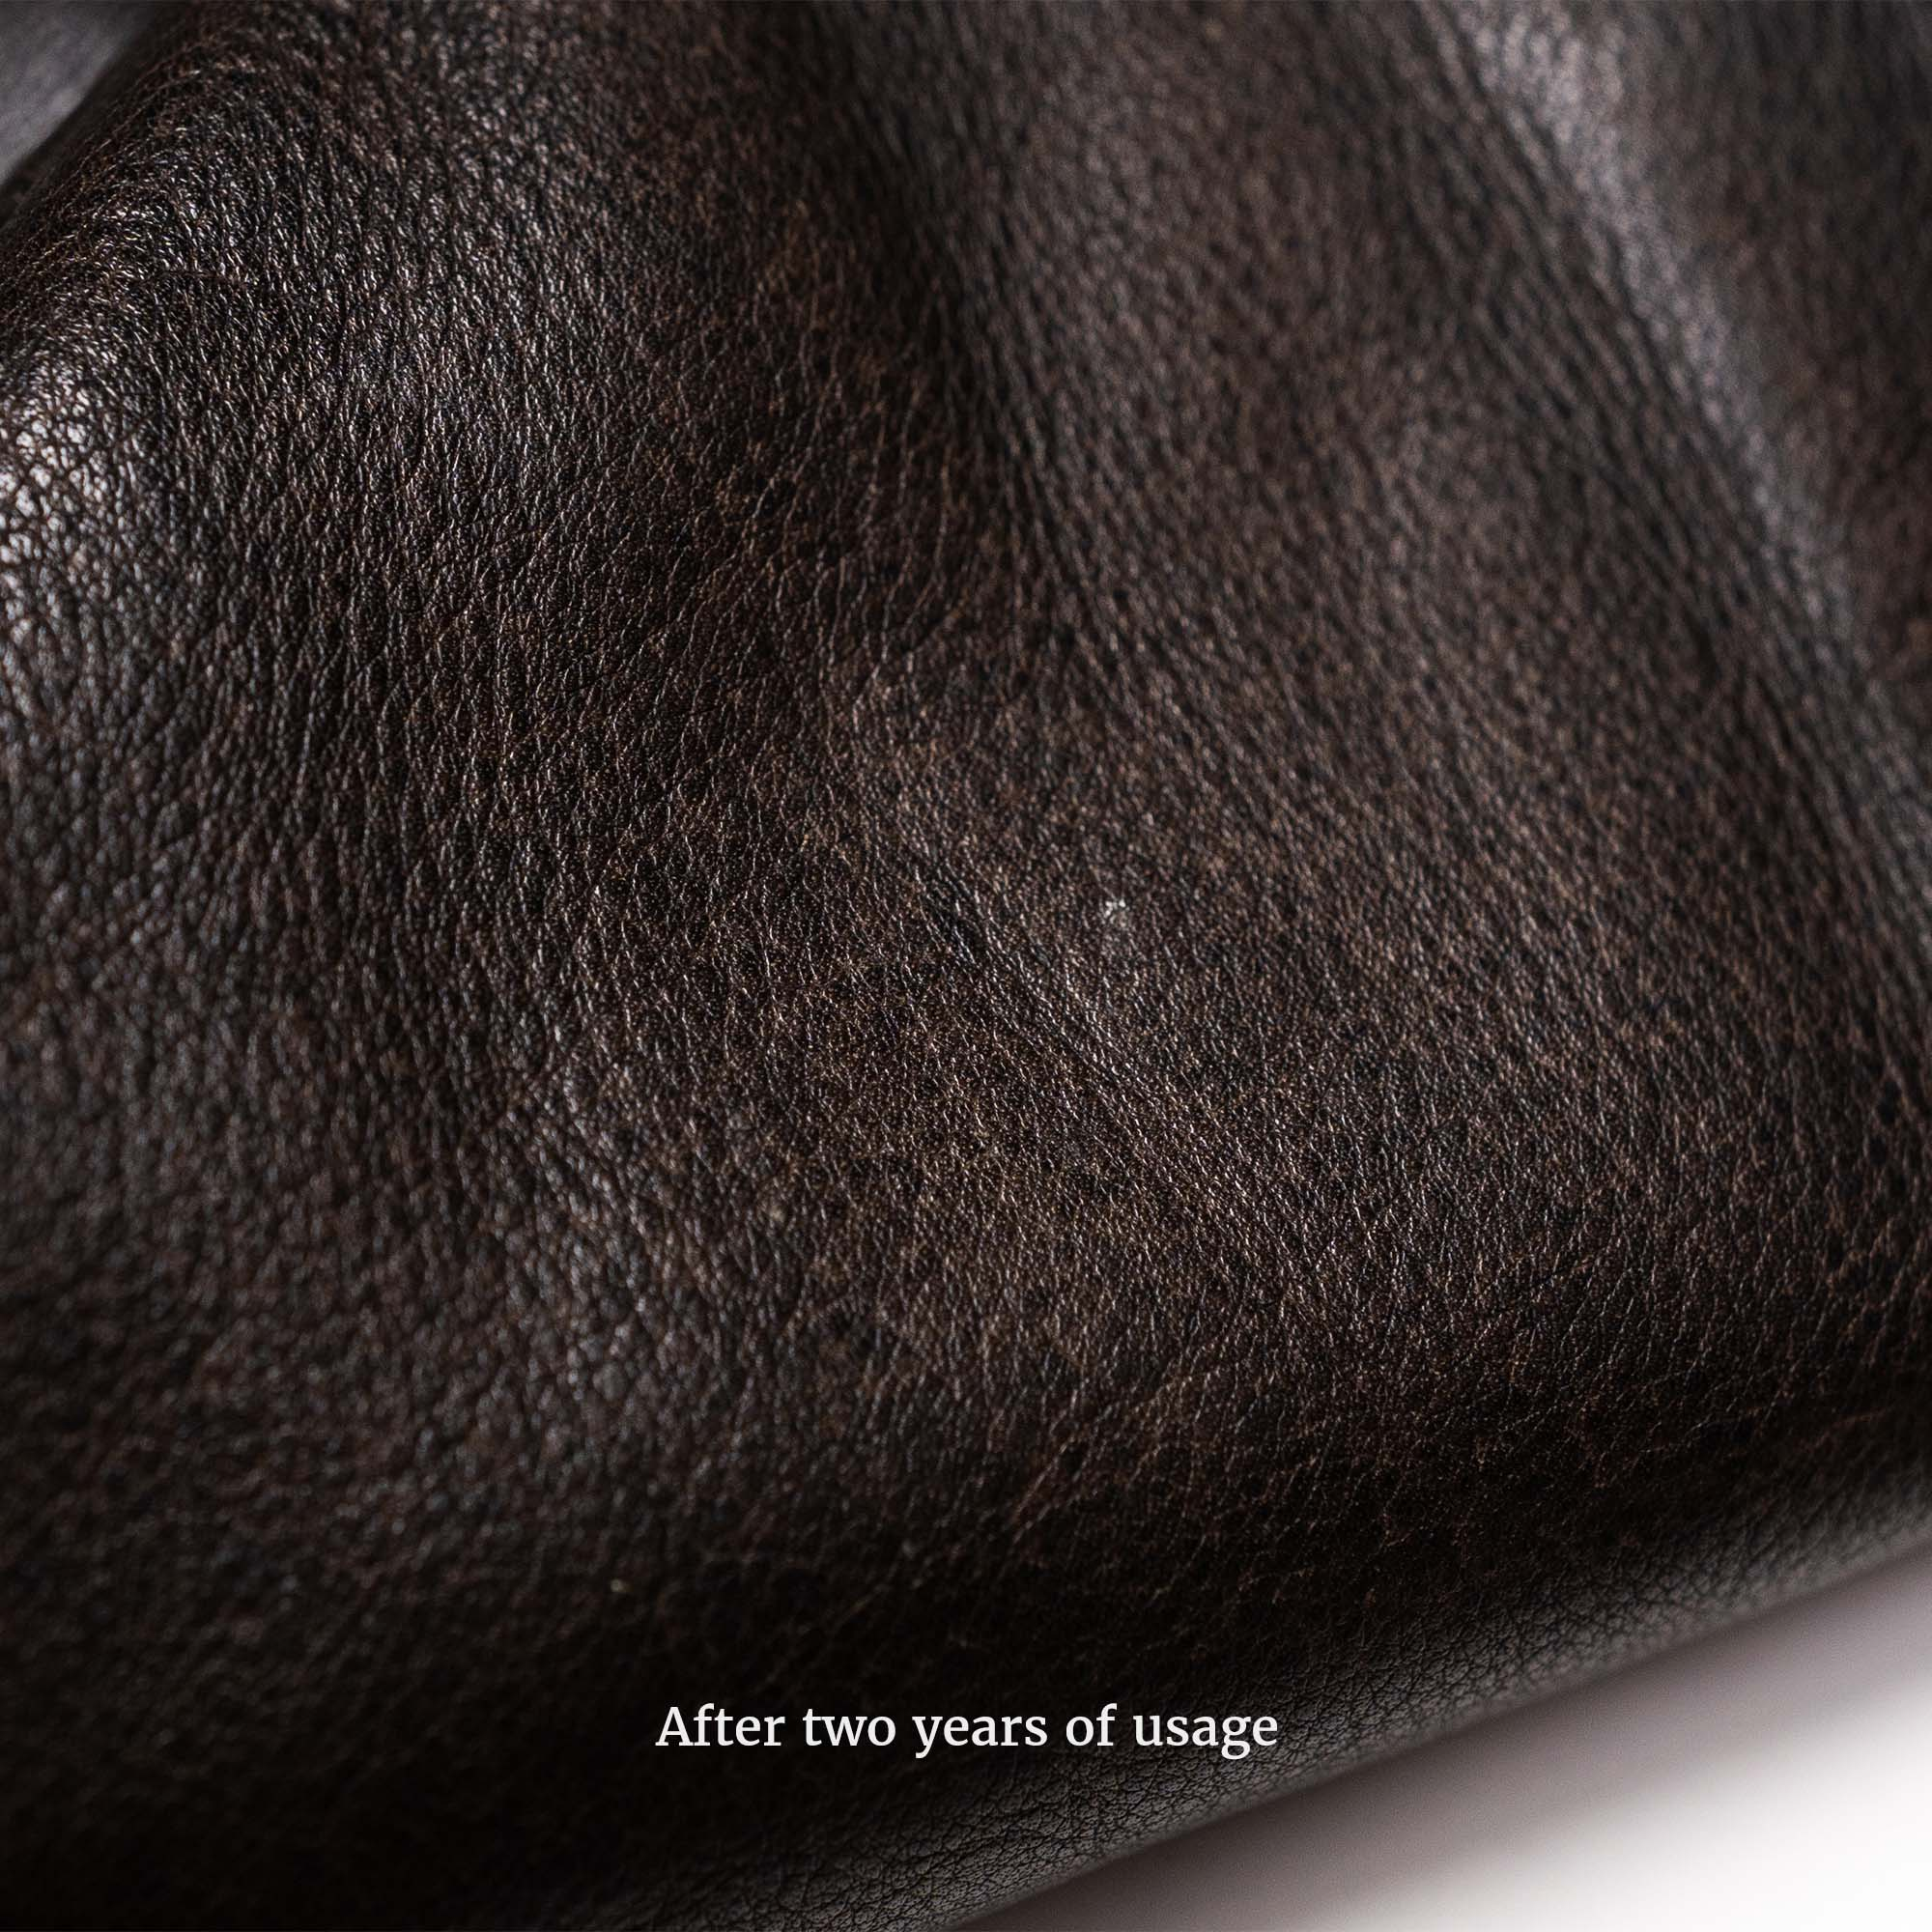 shangri-la-heritage-varenne-black-steerhide-jacket-still-life-leather-detail-used